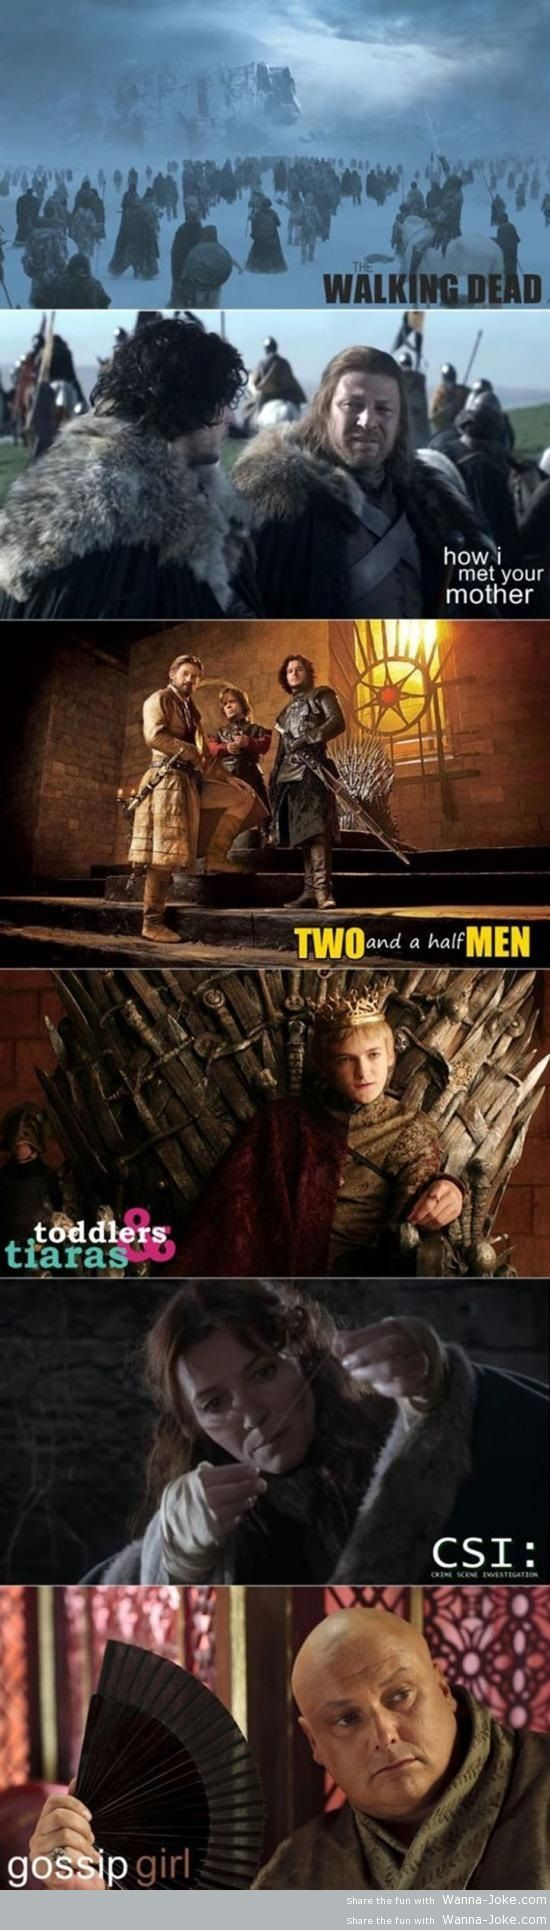 game-of-thrones-other-tv-shows